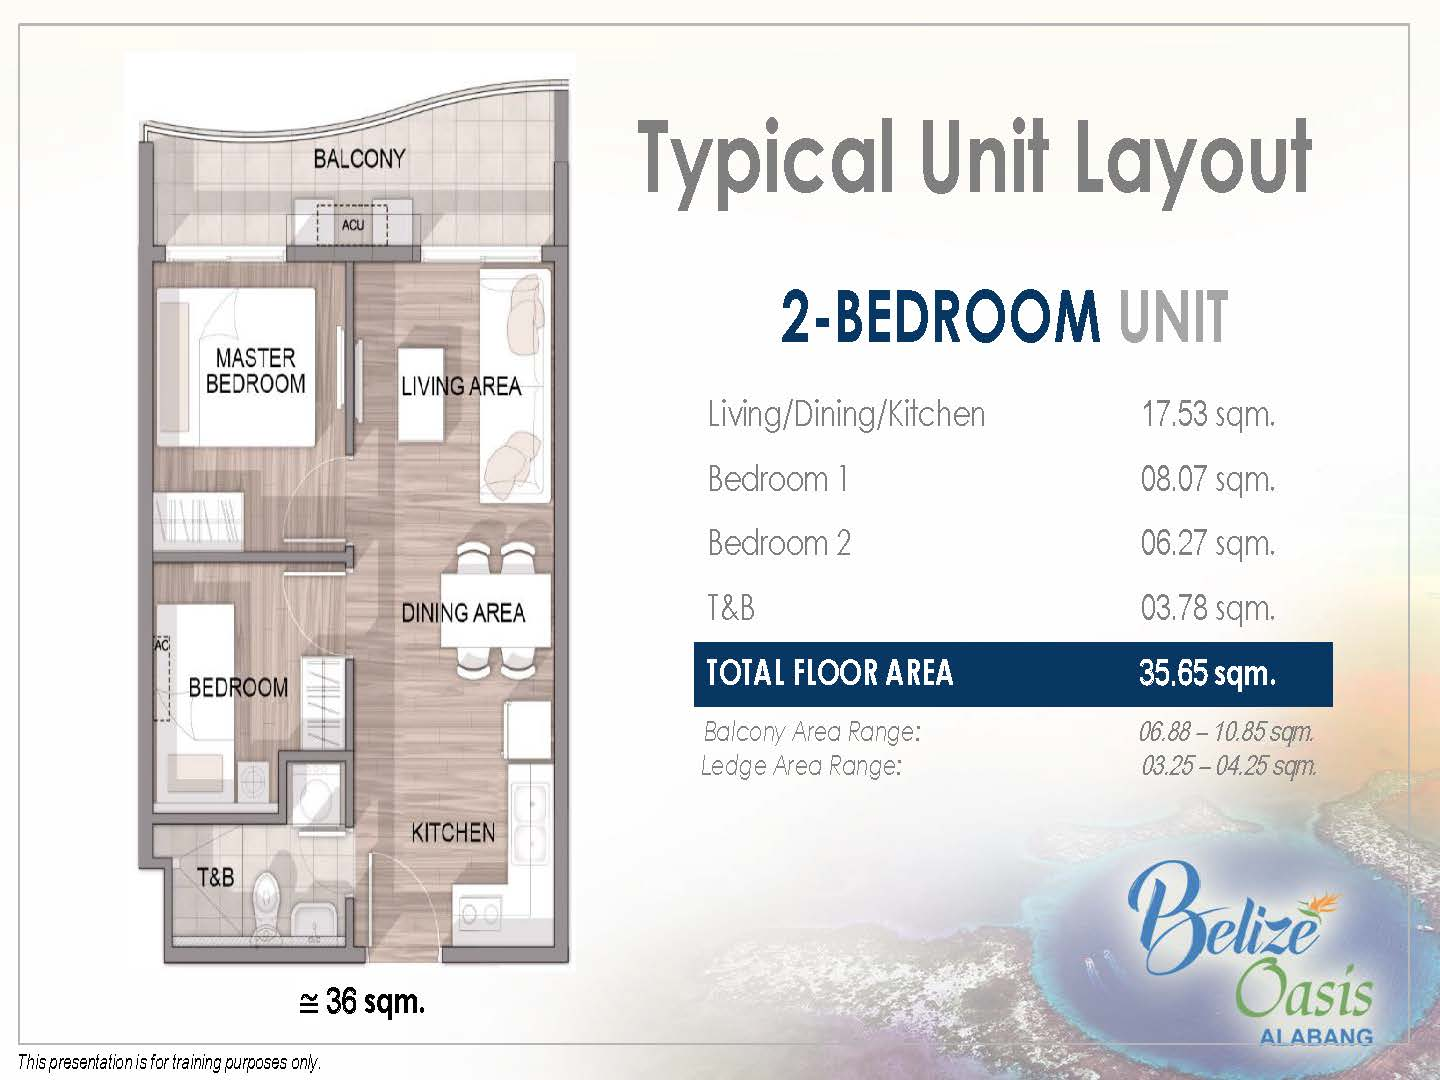 Belize Oasis Unit Layout